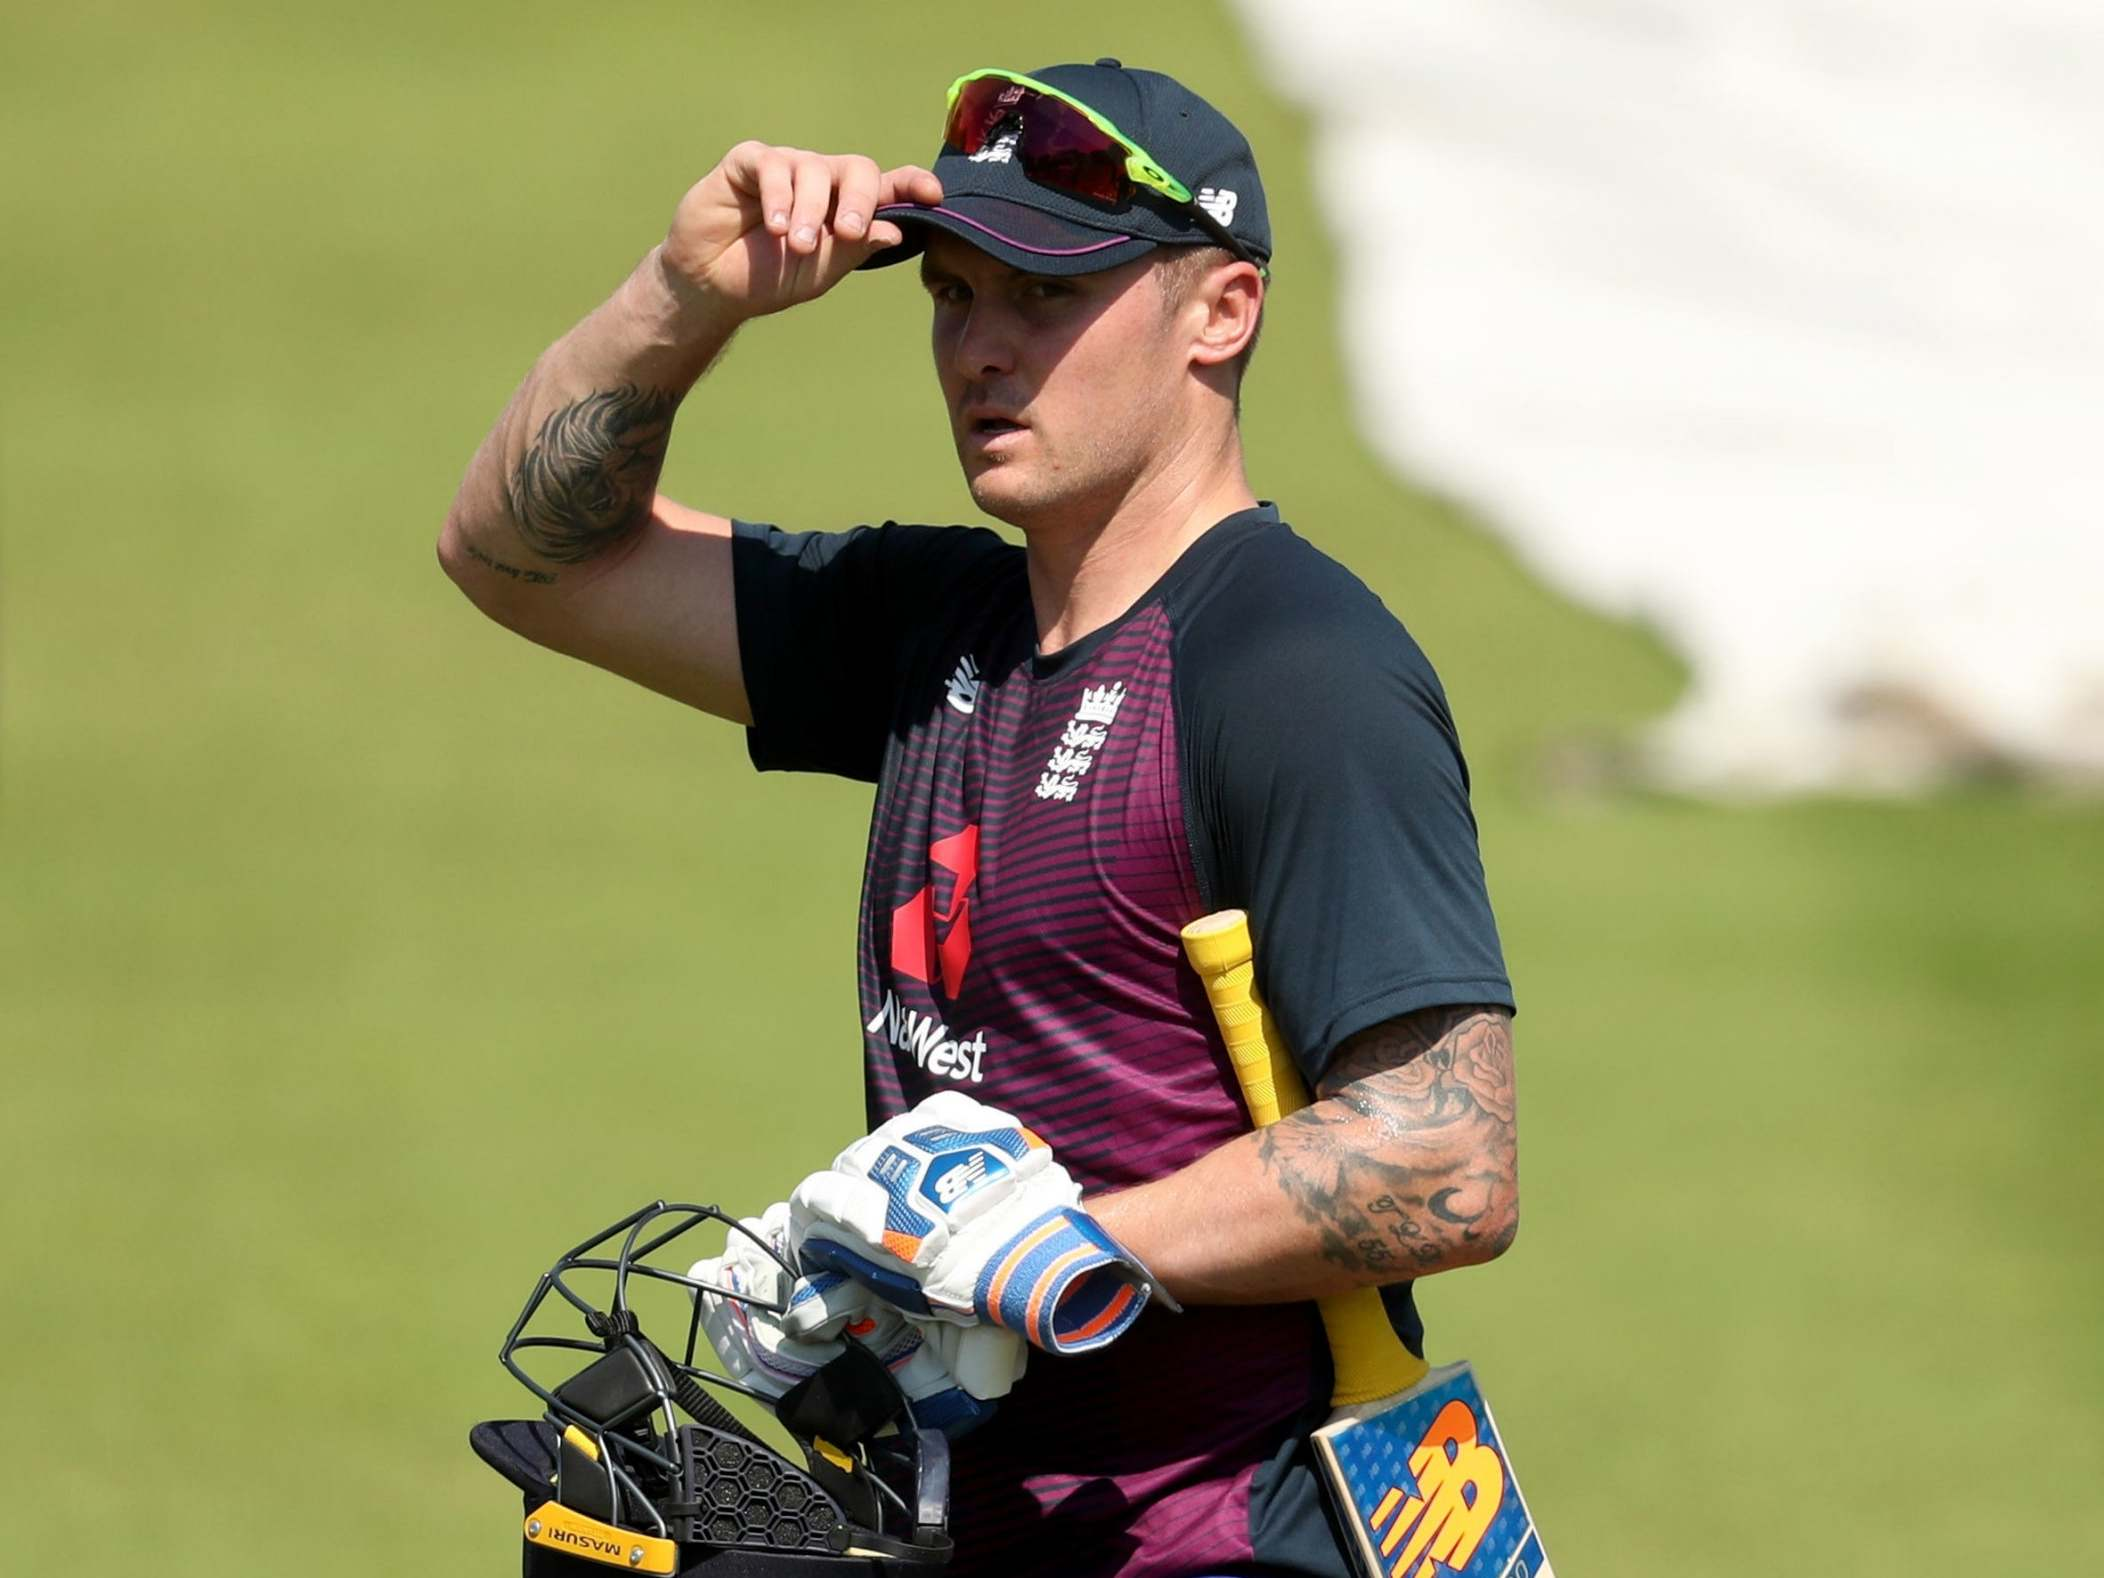 England vs Ireland: Jason Roy to make Test debut at Lord's alongside Olly Stone